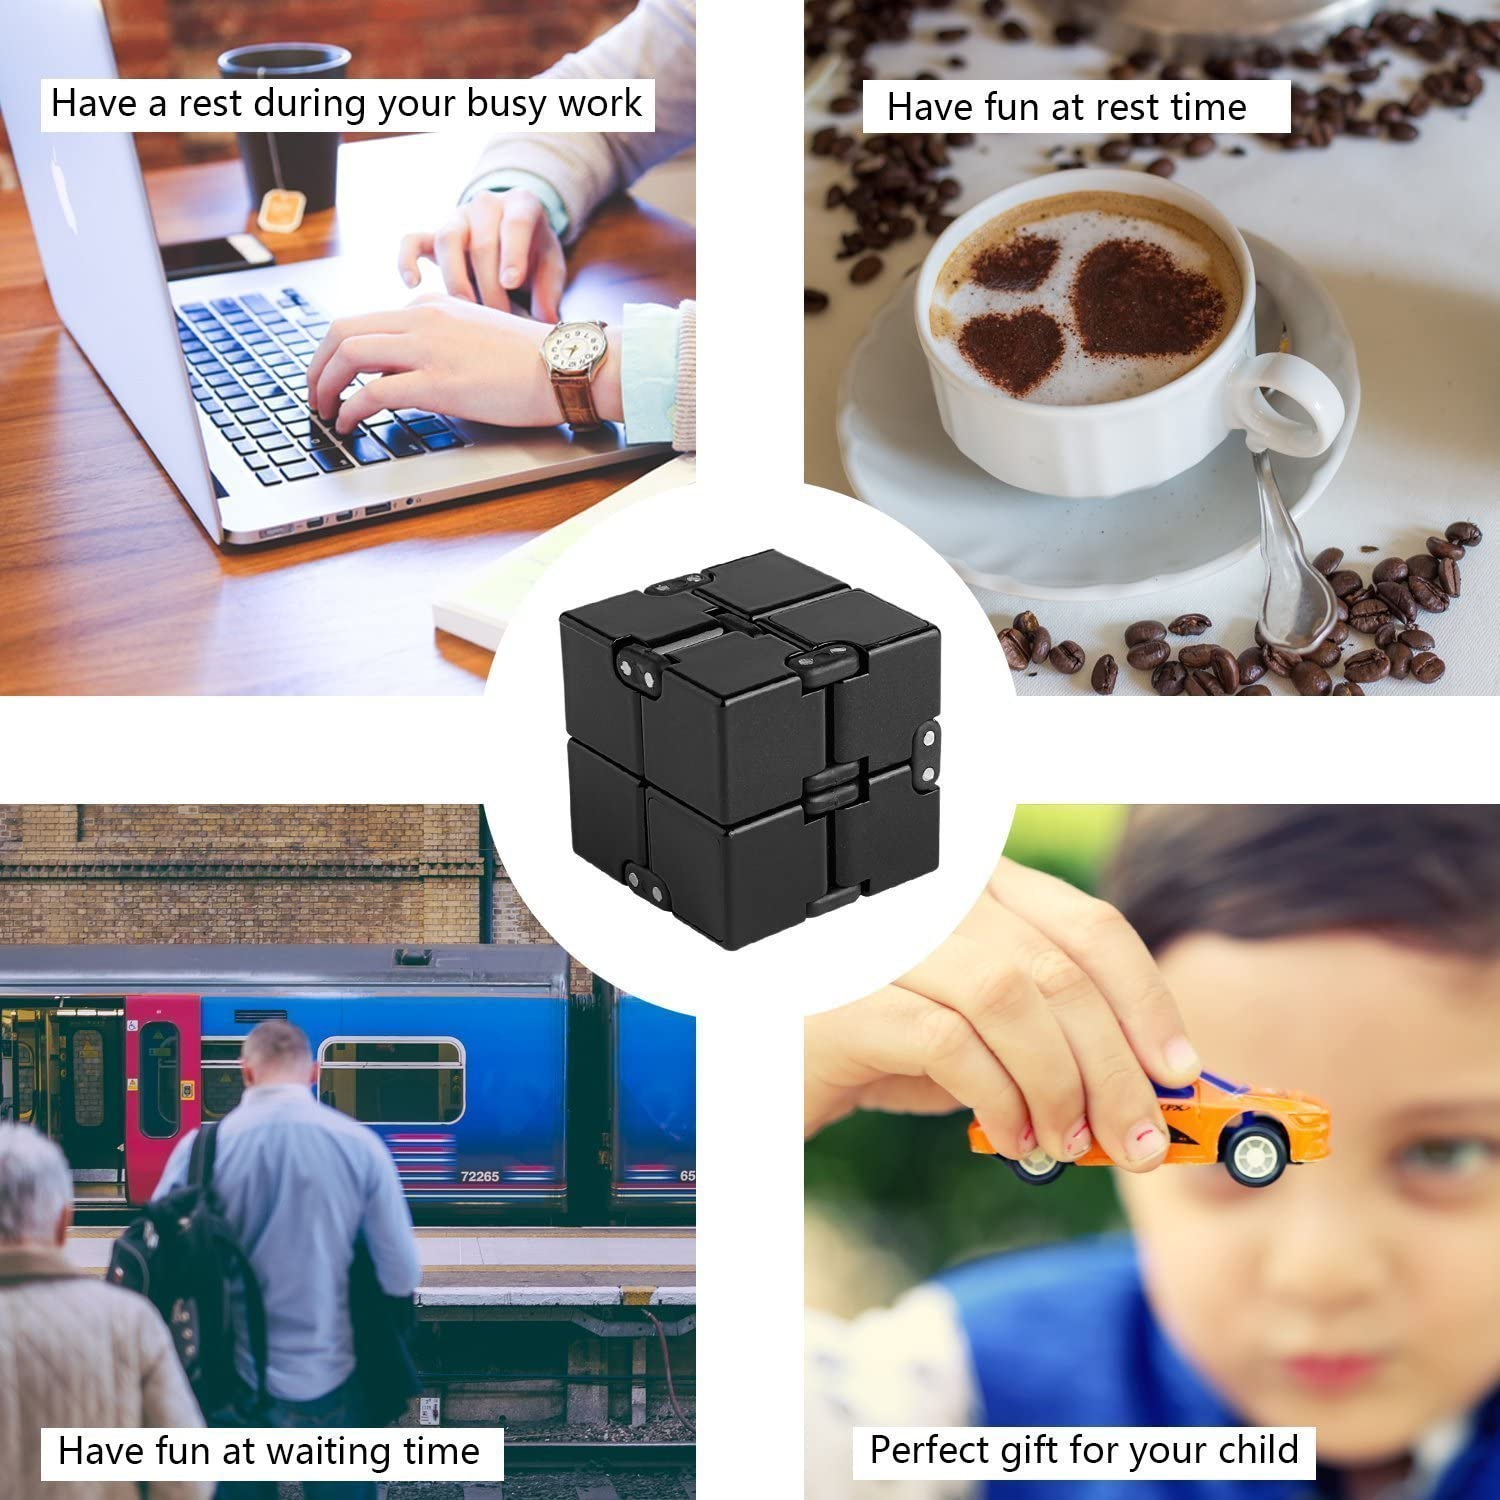 ADHD and Autism Adult and Children Anxiety open up to love Infinity Cube Fidget Toy Hand Killing Time Prime Infinite Cube for ADD